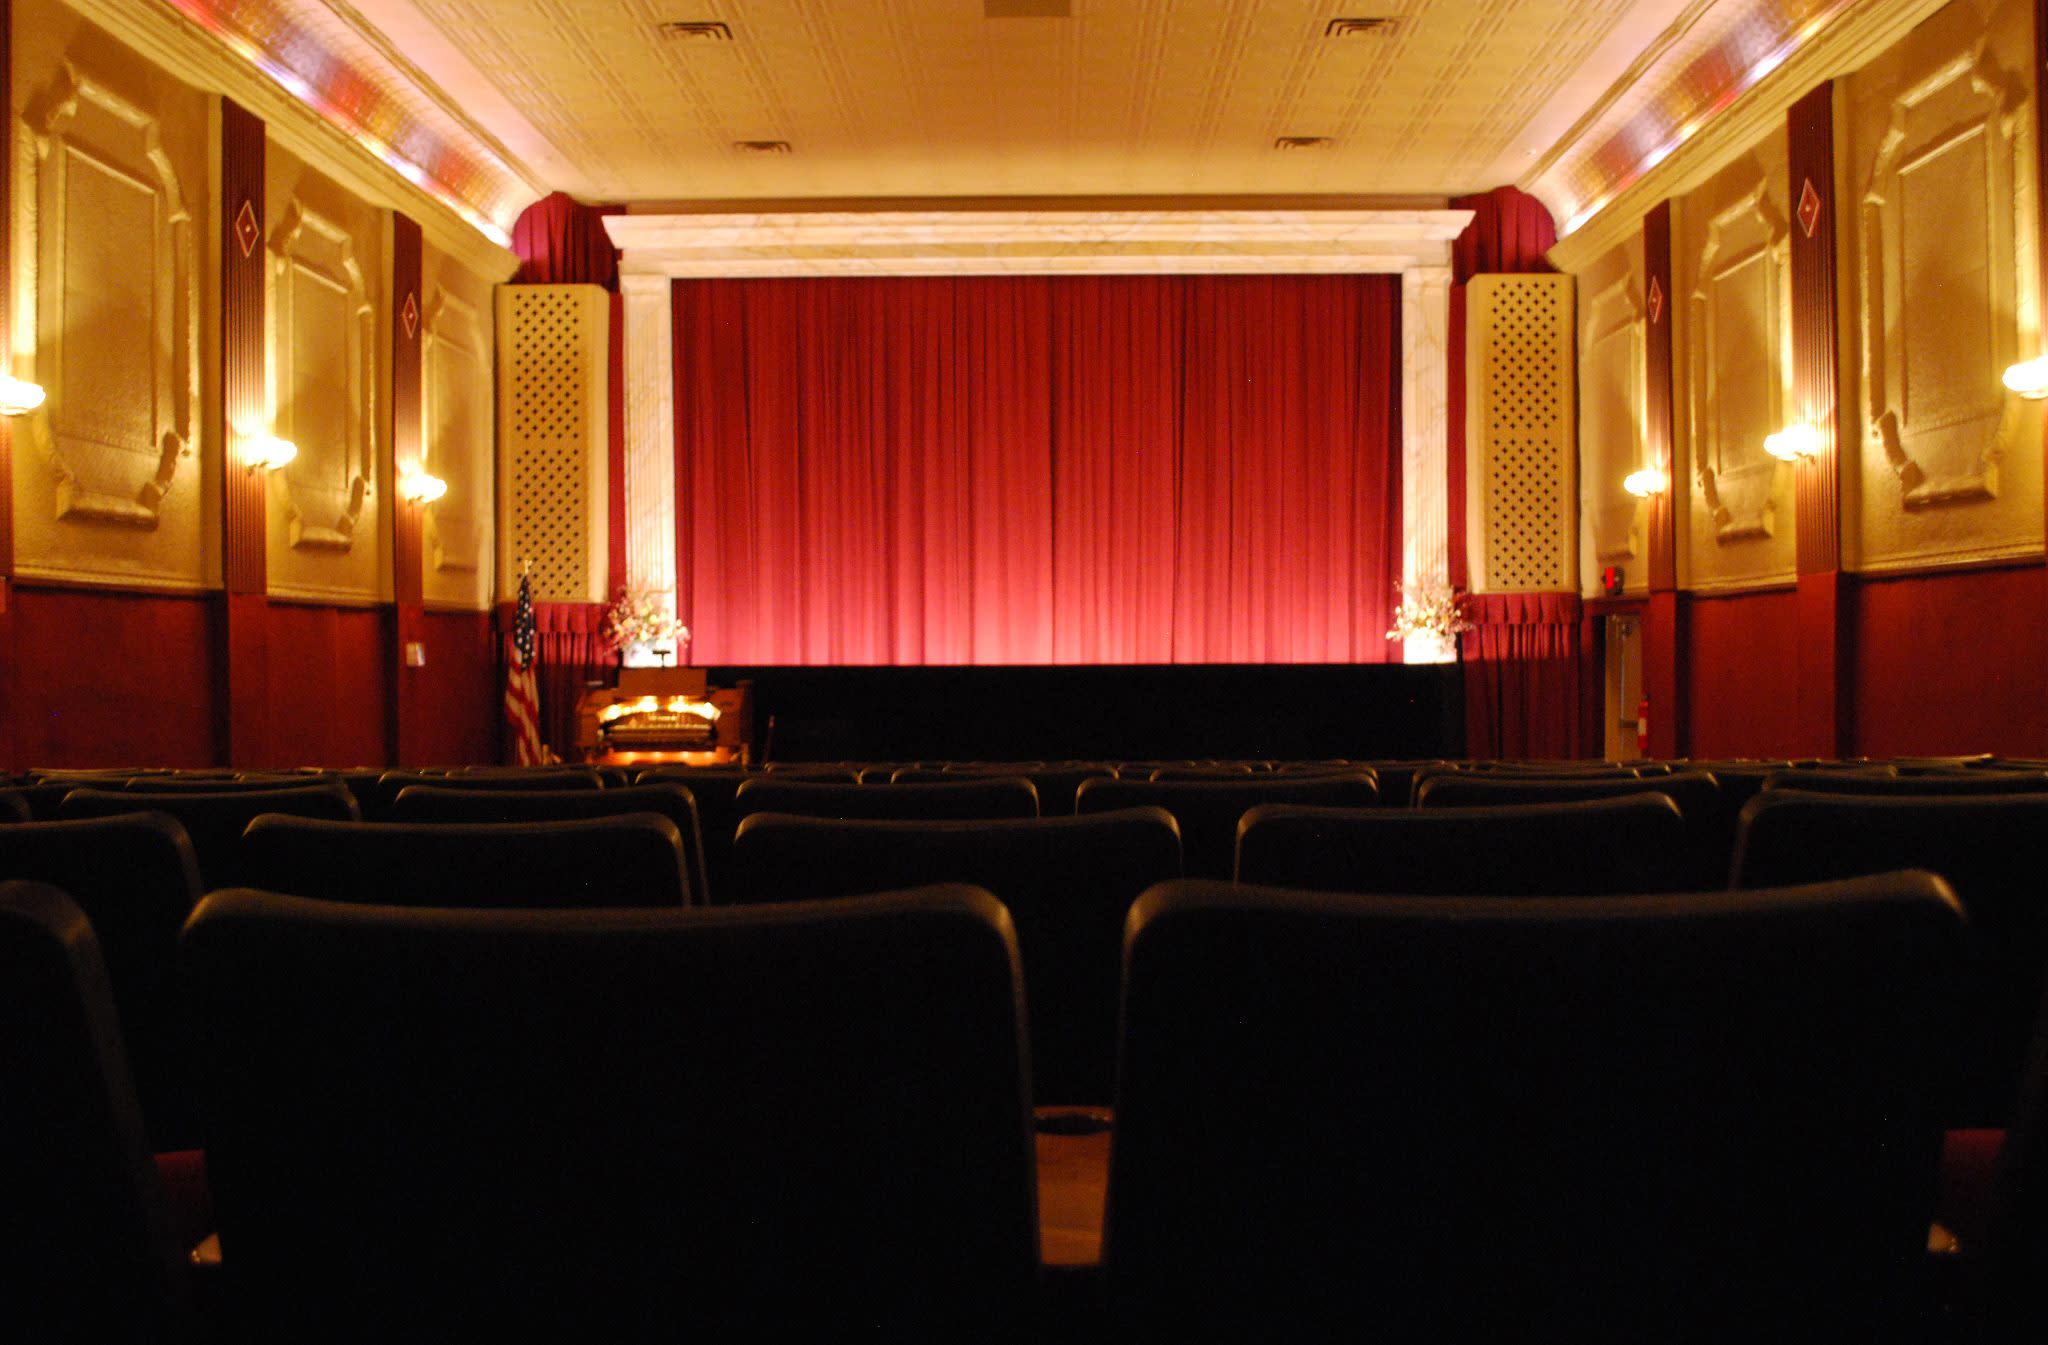 The Grand Theater in East Greenville